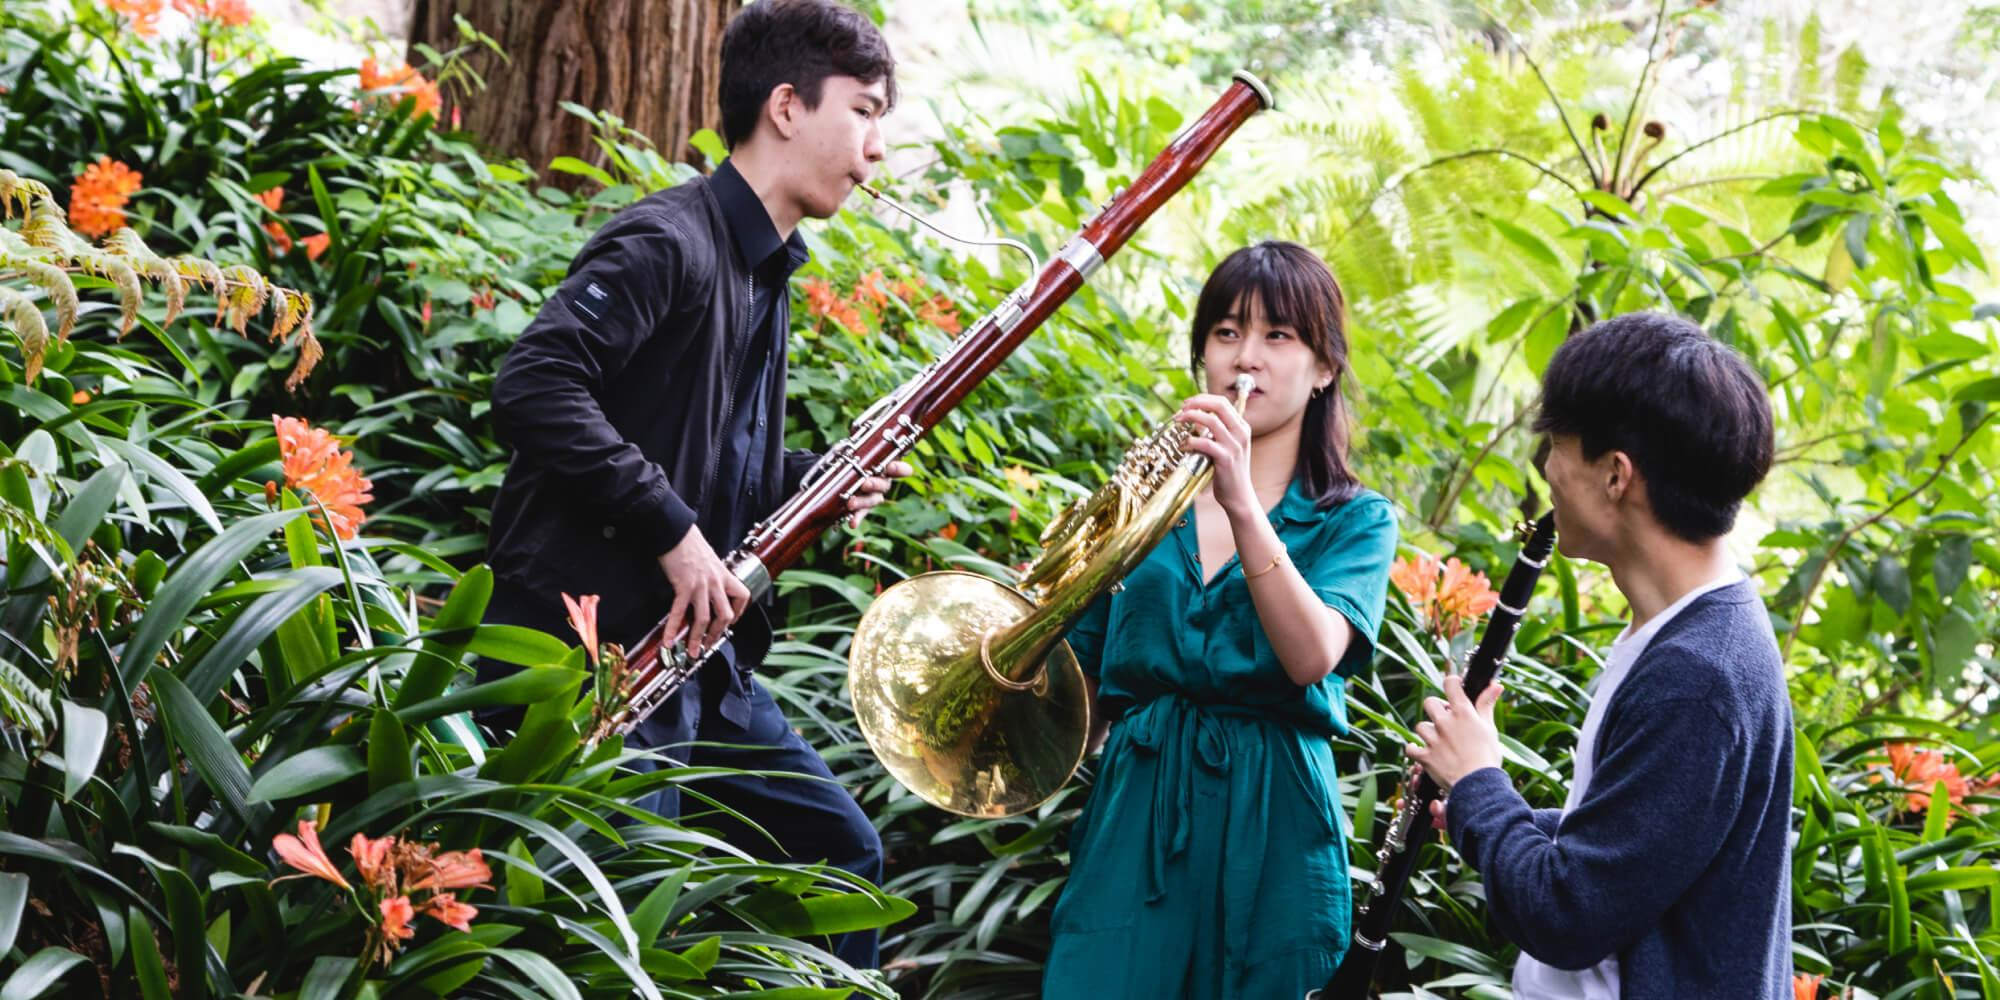 Conservatory students performing outdoors